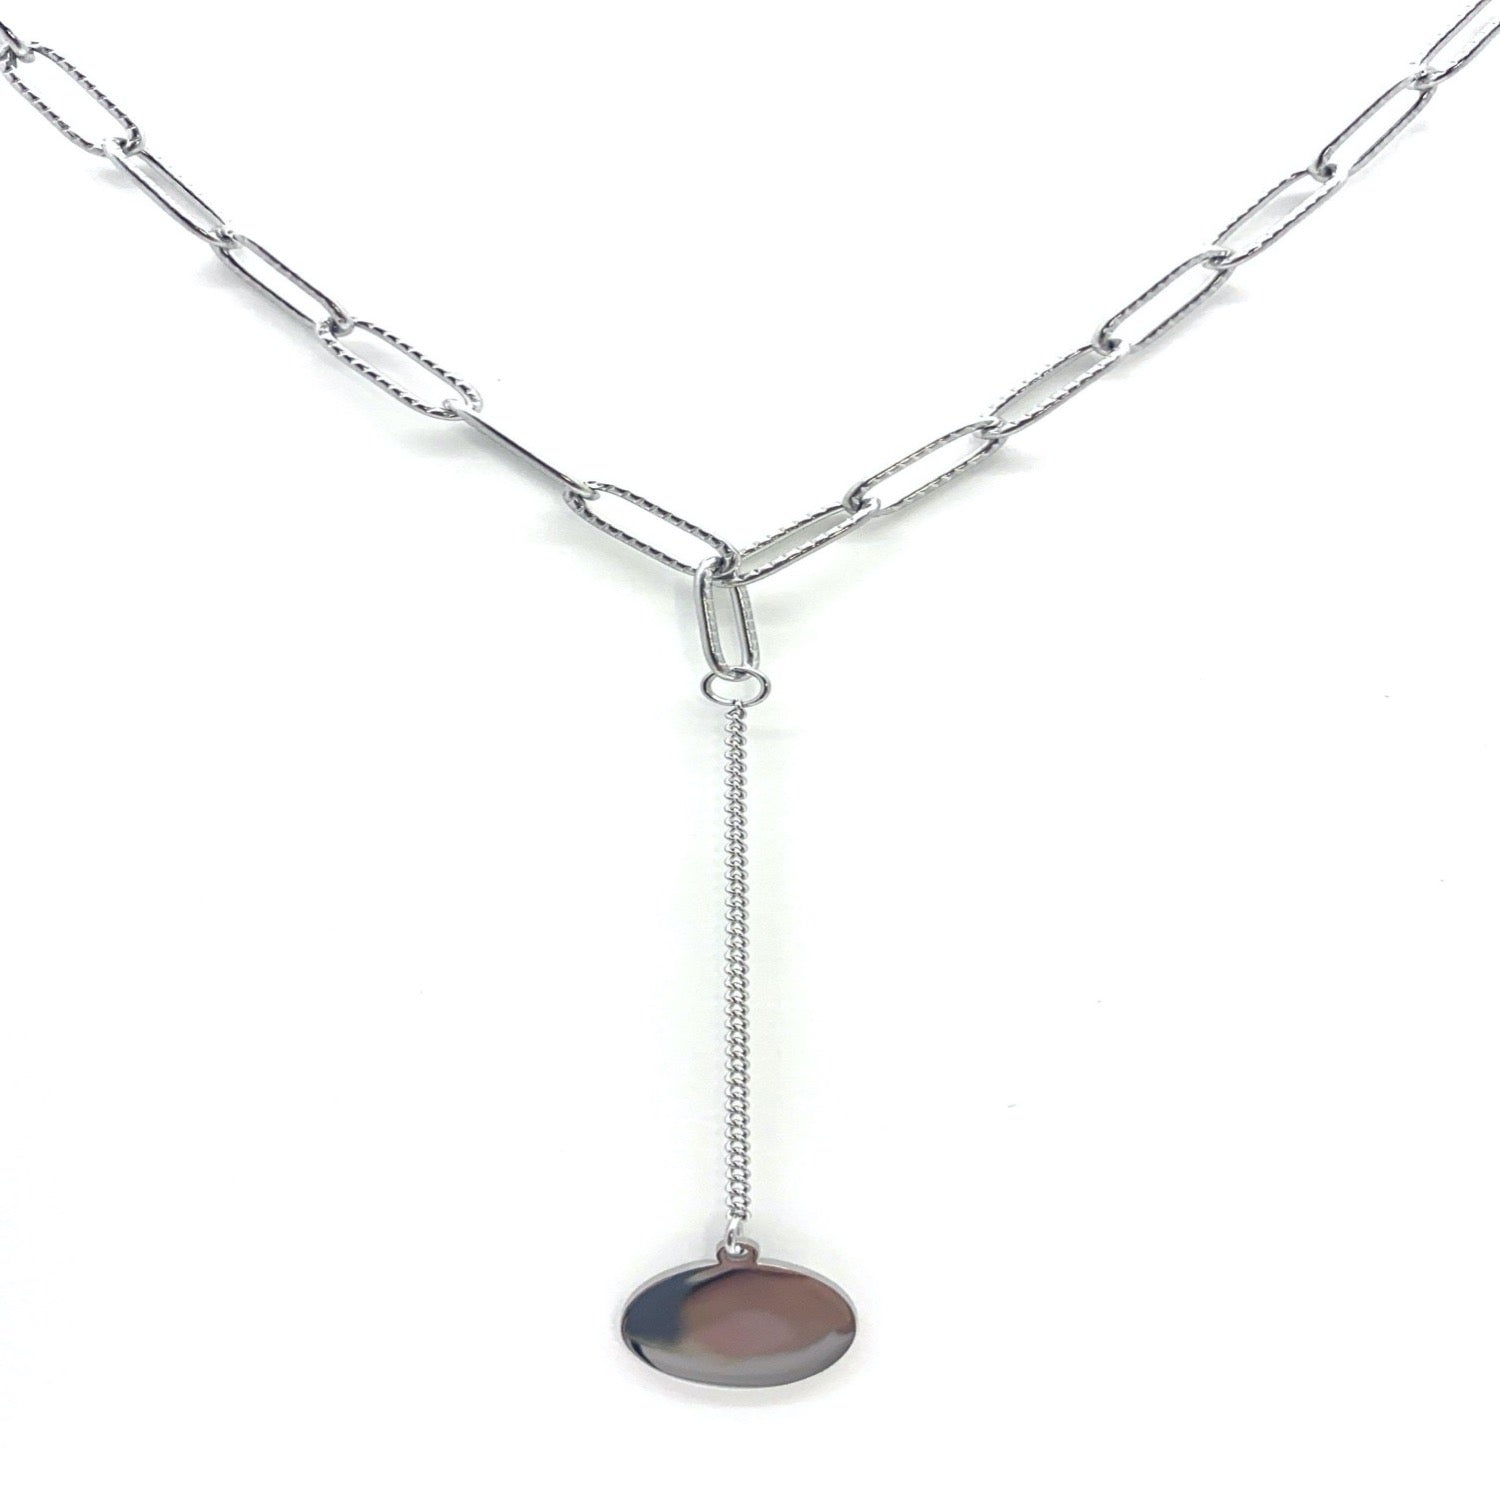 stainless steel link chain with pending solid coin necklace